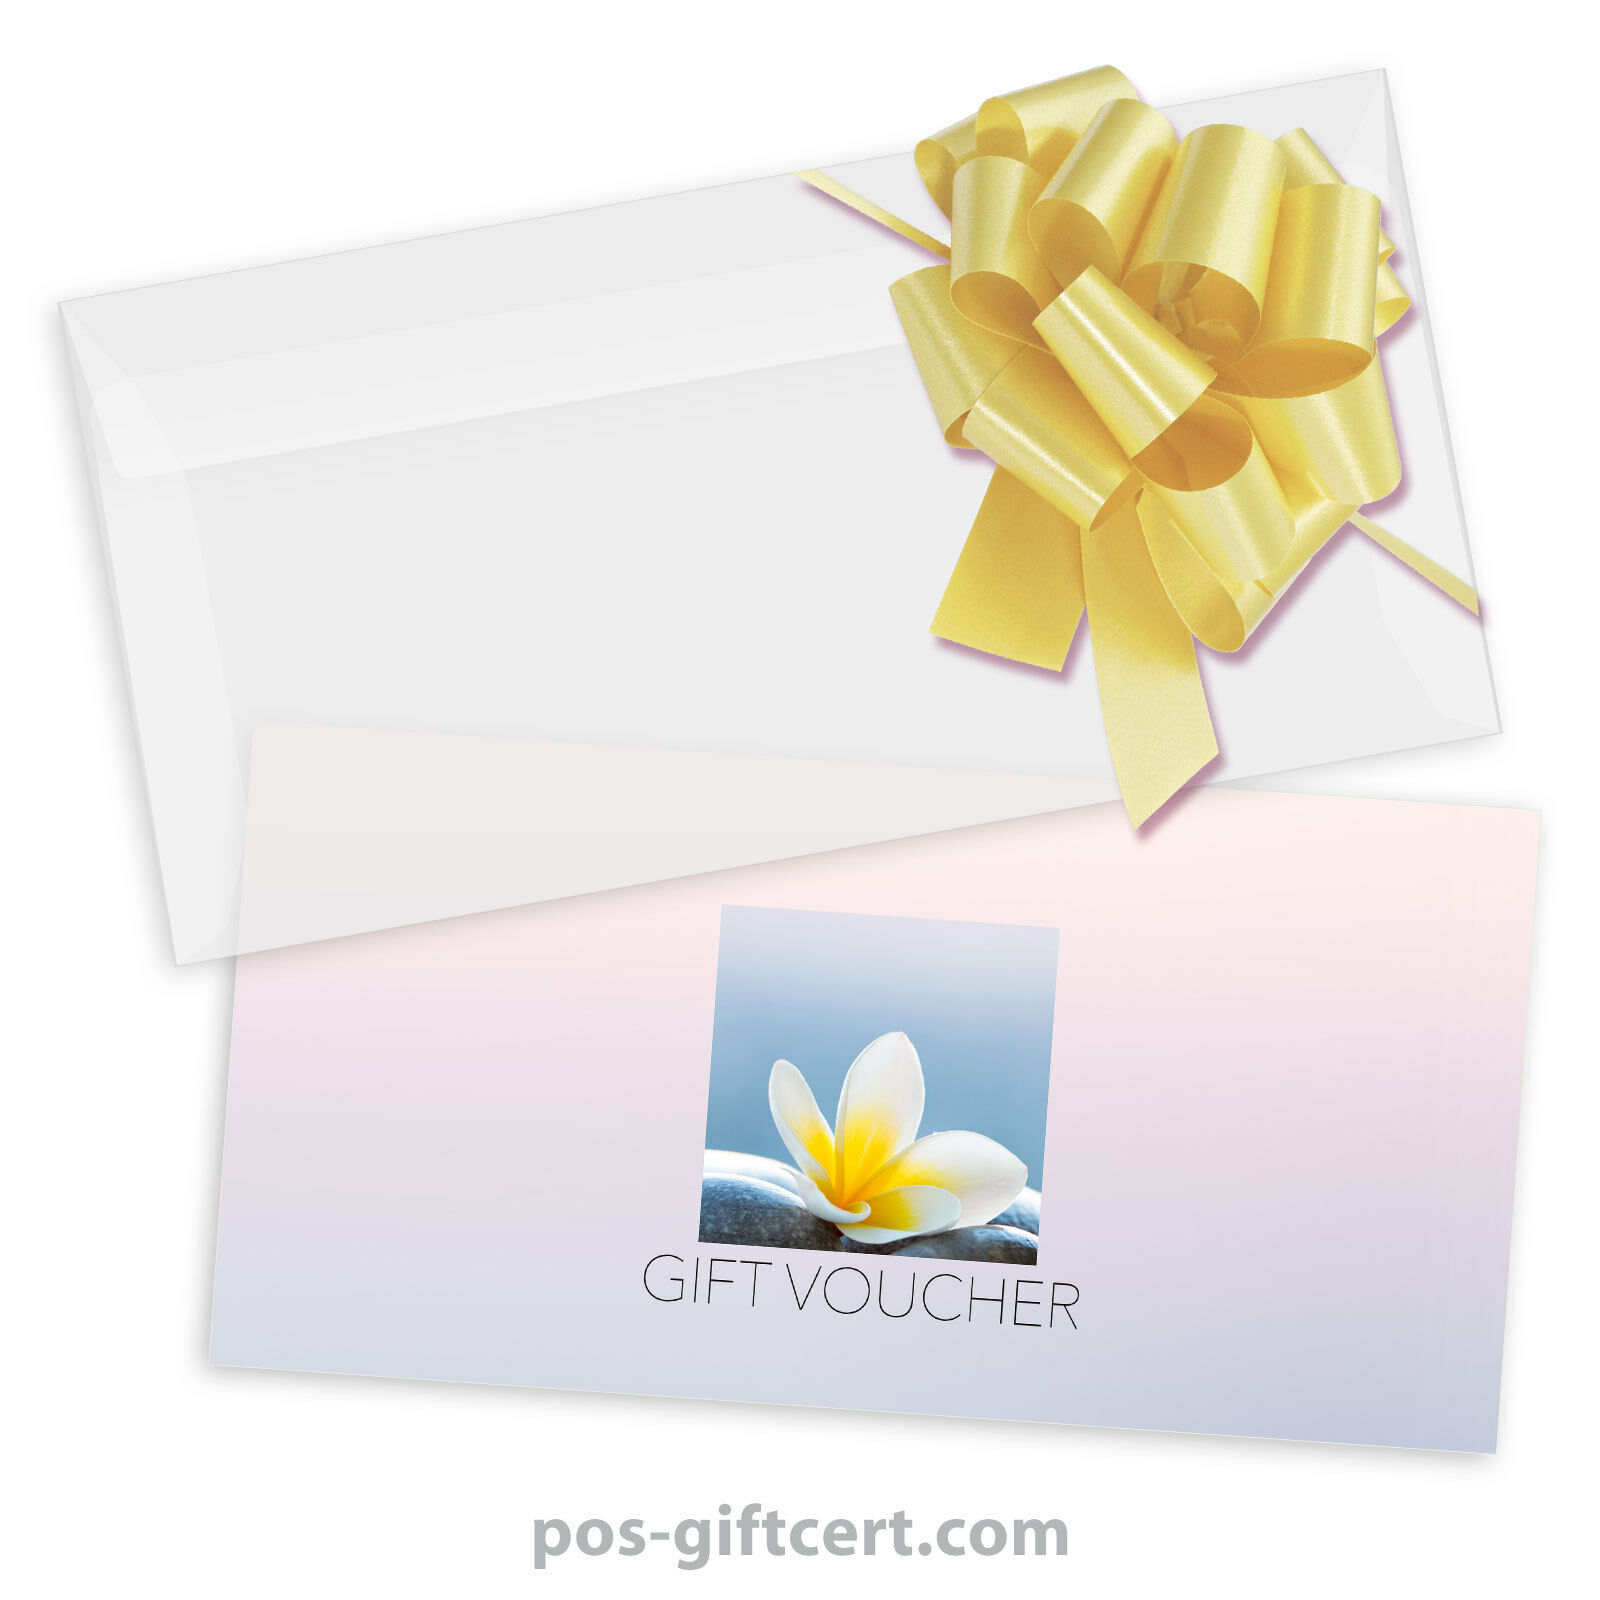 Gift Gift Gift vouchers  envelopes  pull bows for massage wellnes physiotherapy MA250GB | Gute Qualität